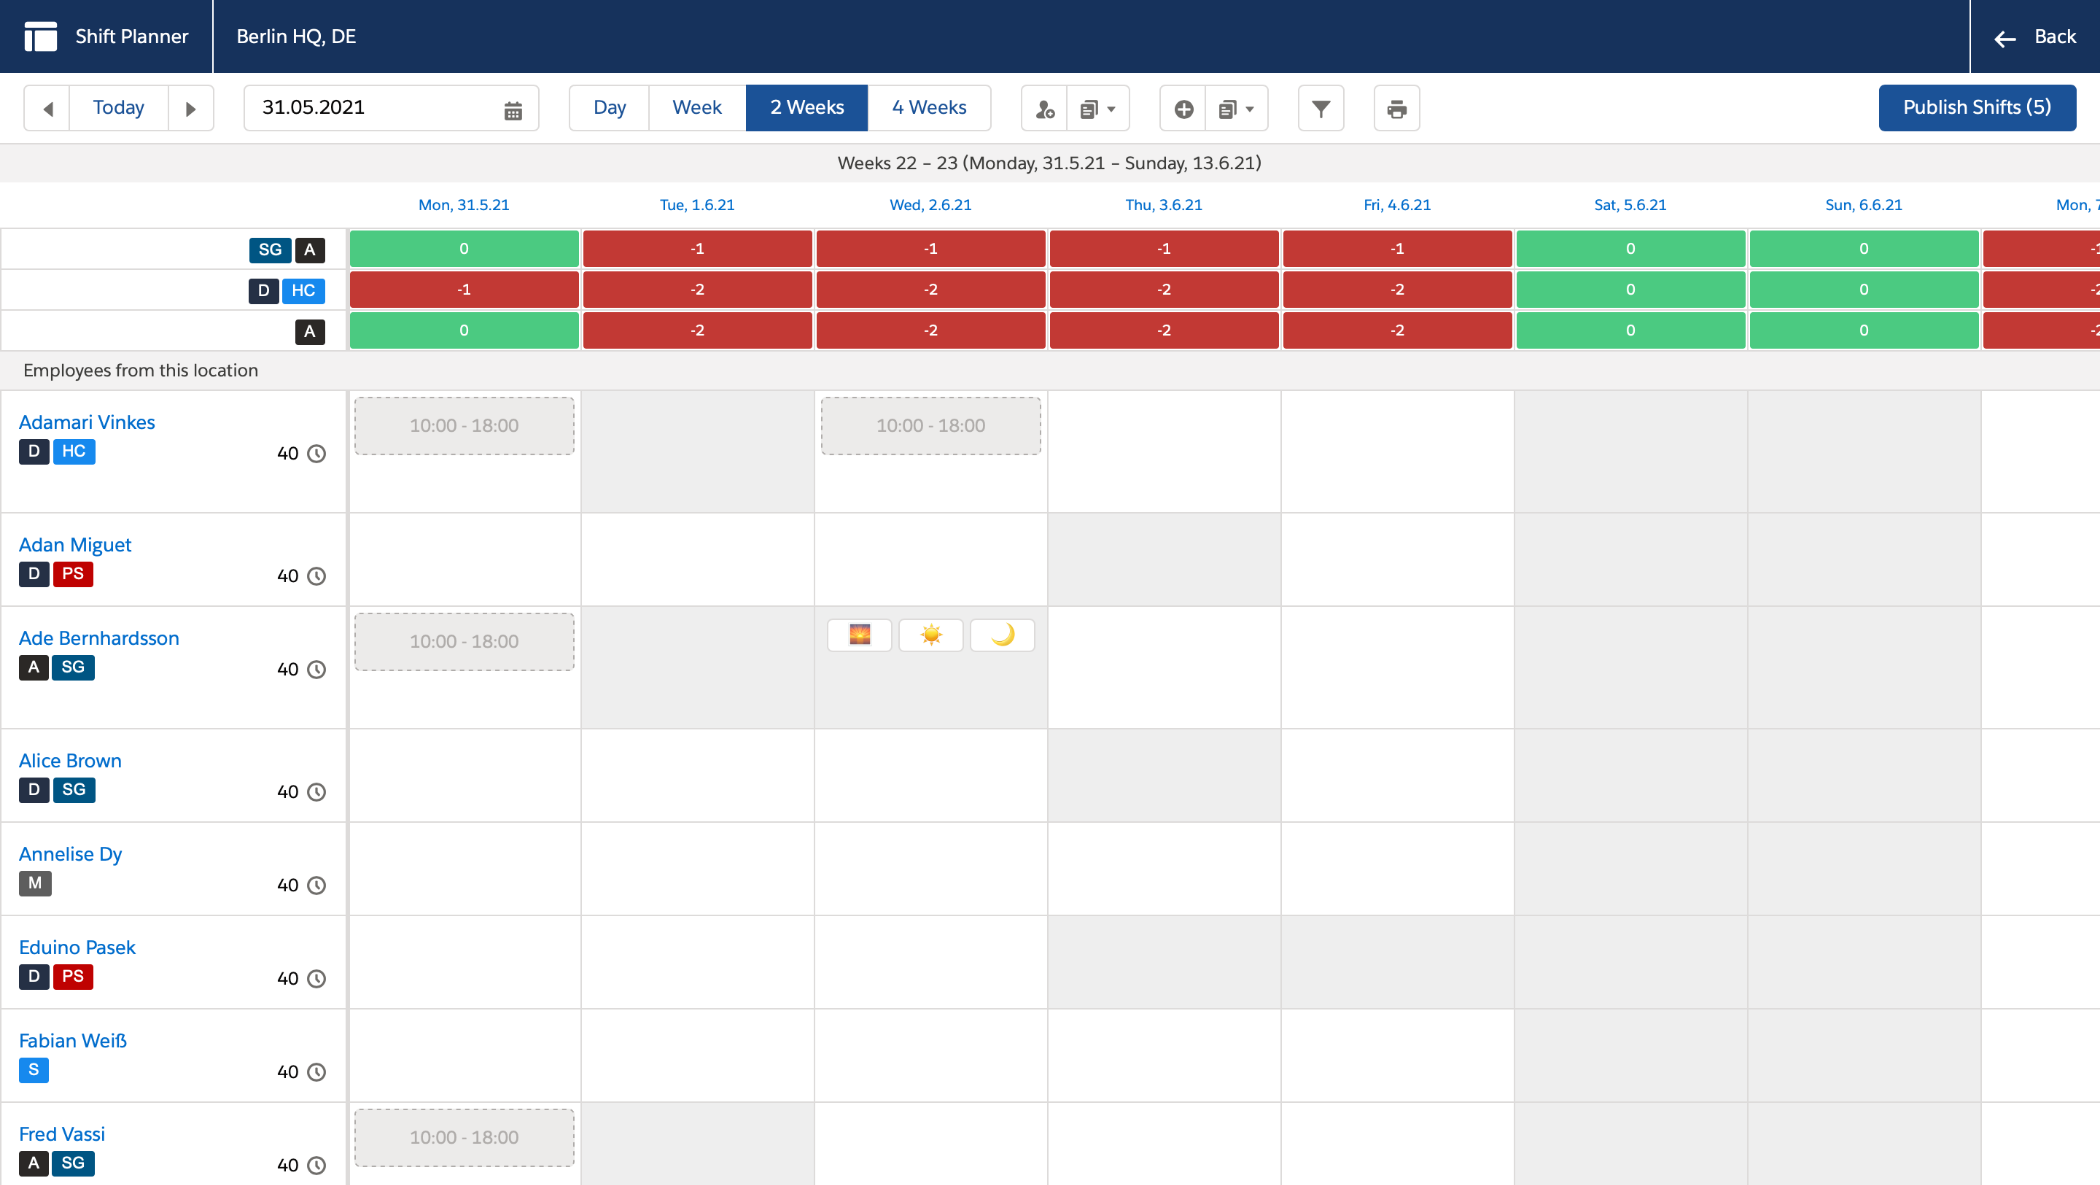 Plan the shifts of your staff to match the demand of each location through flair's customizable and user-friendly shift planner. With our solution employees have control over their work which is critical for employee satisfaction.